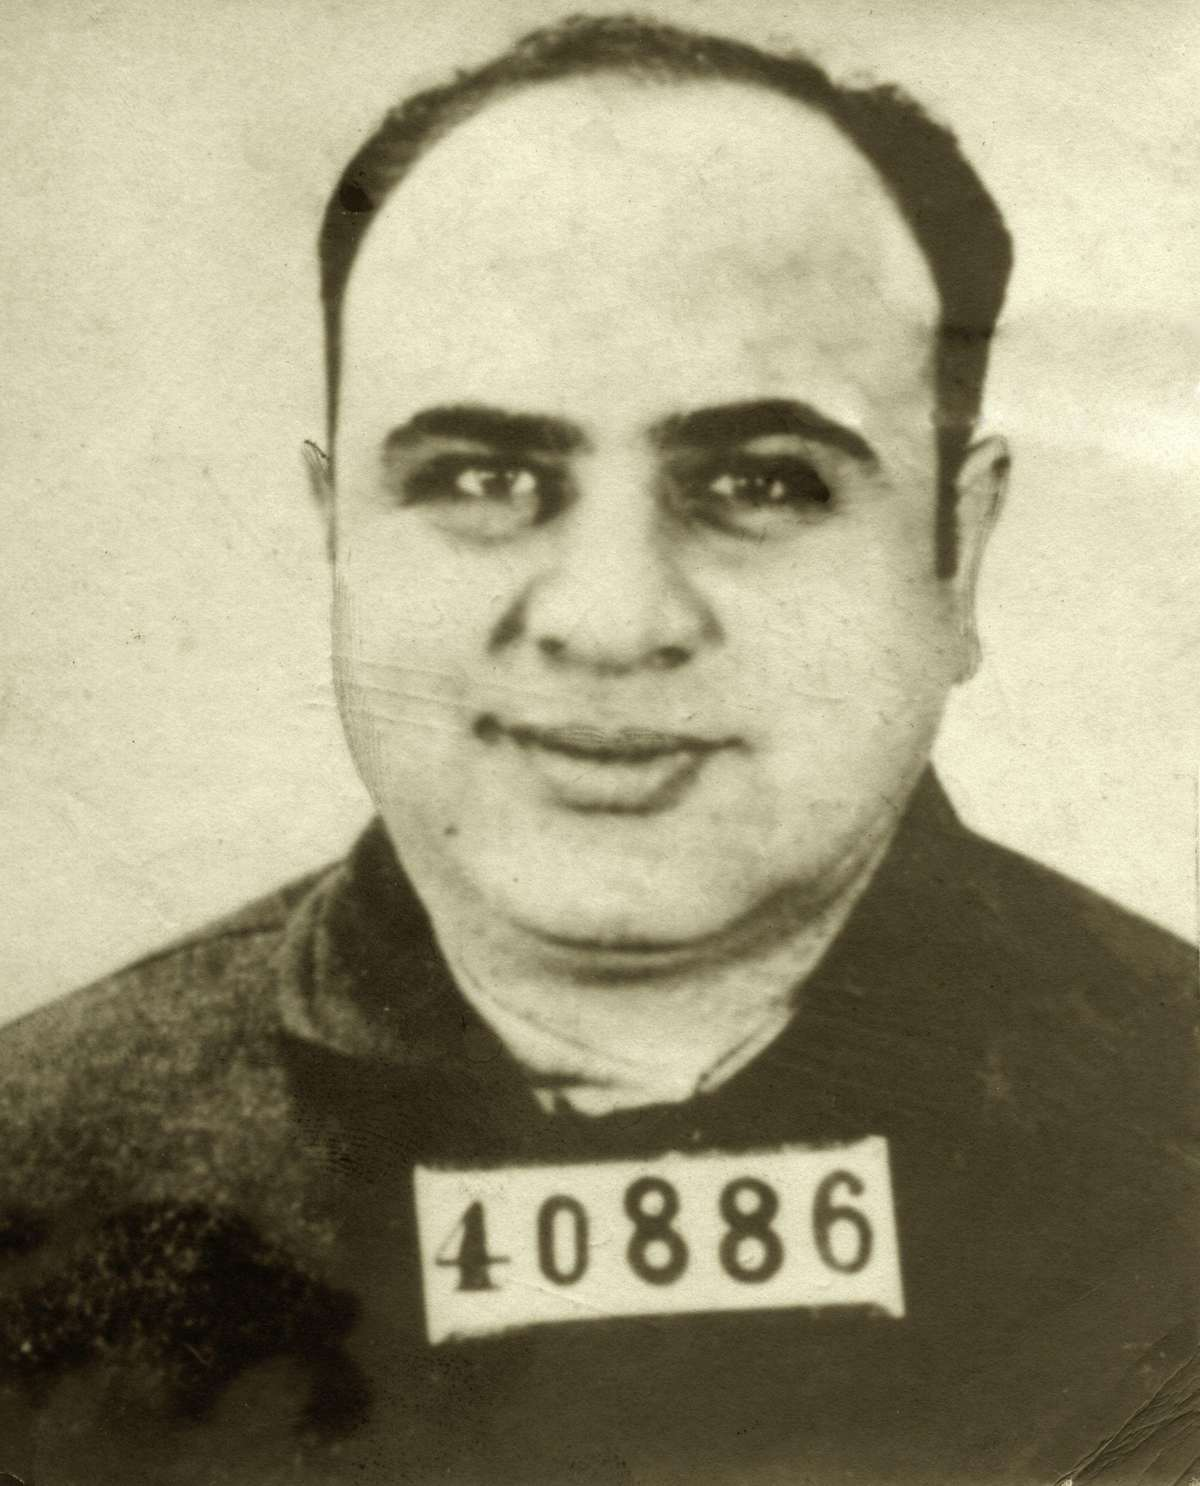 a biography of alphonse capone a k a al scarface Free essay: during the prohibition era of the 1920's, if one wasn't an enemy of alphonse (al) scarface capone, was he, in many eyes, a hero due.